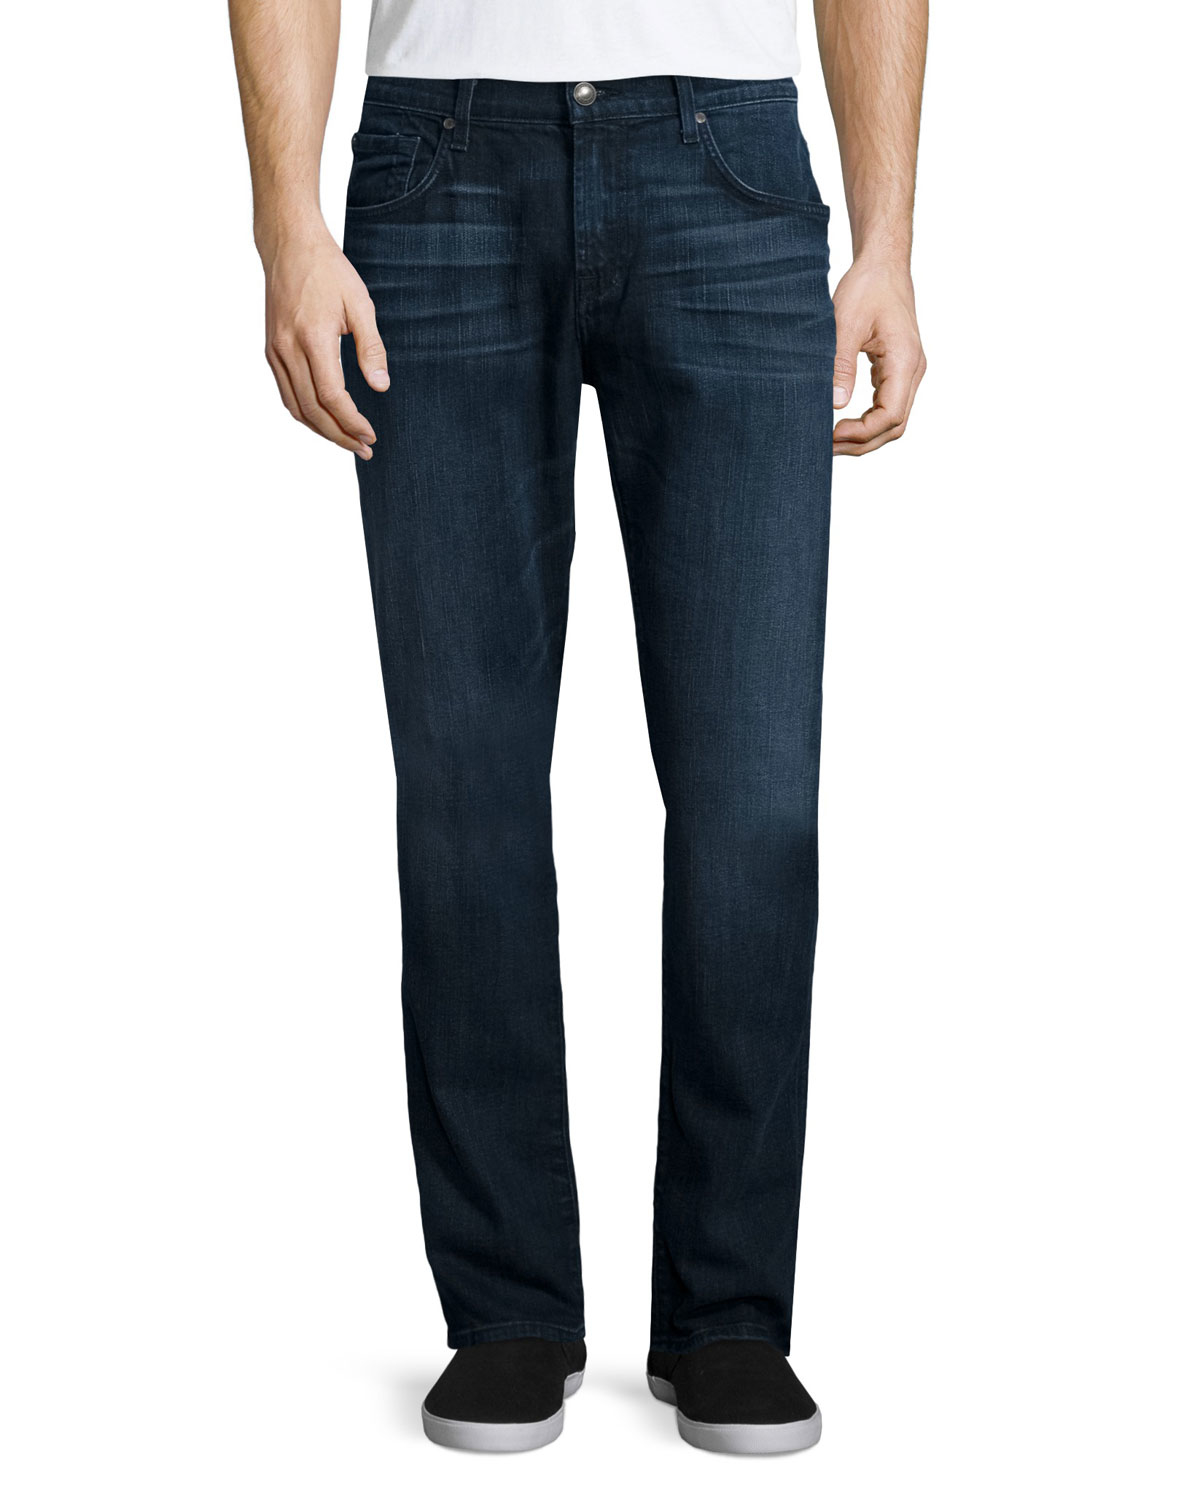 7 for all mankind straight leg foolproof denim jeans in. Black Bedroom Furniture Sets. Home Design Ideas